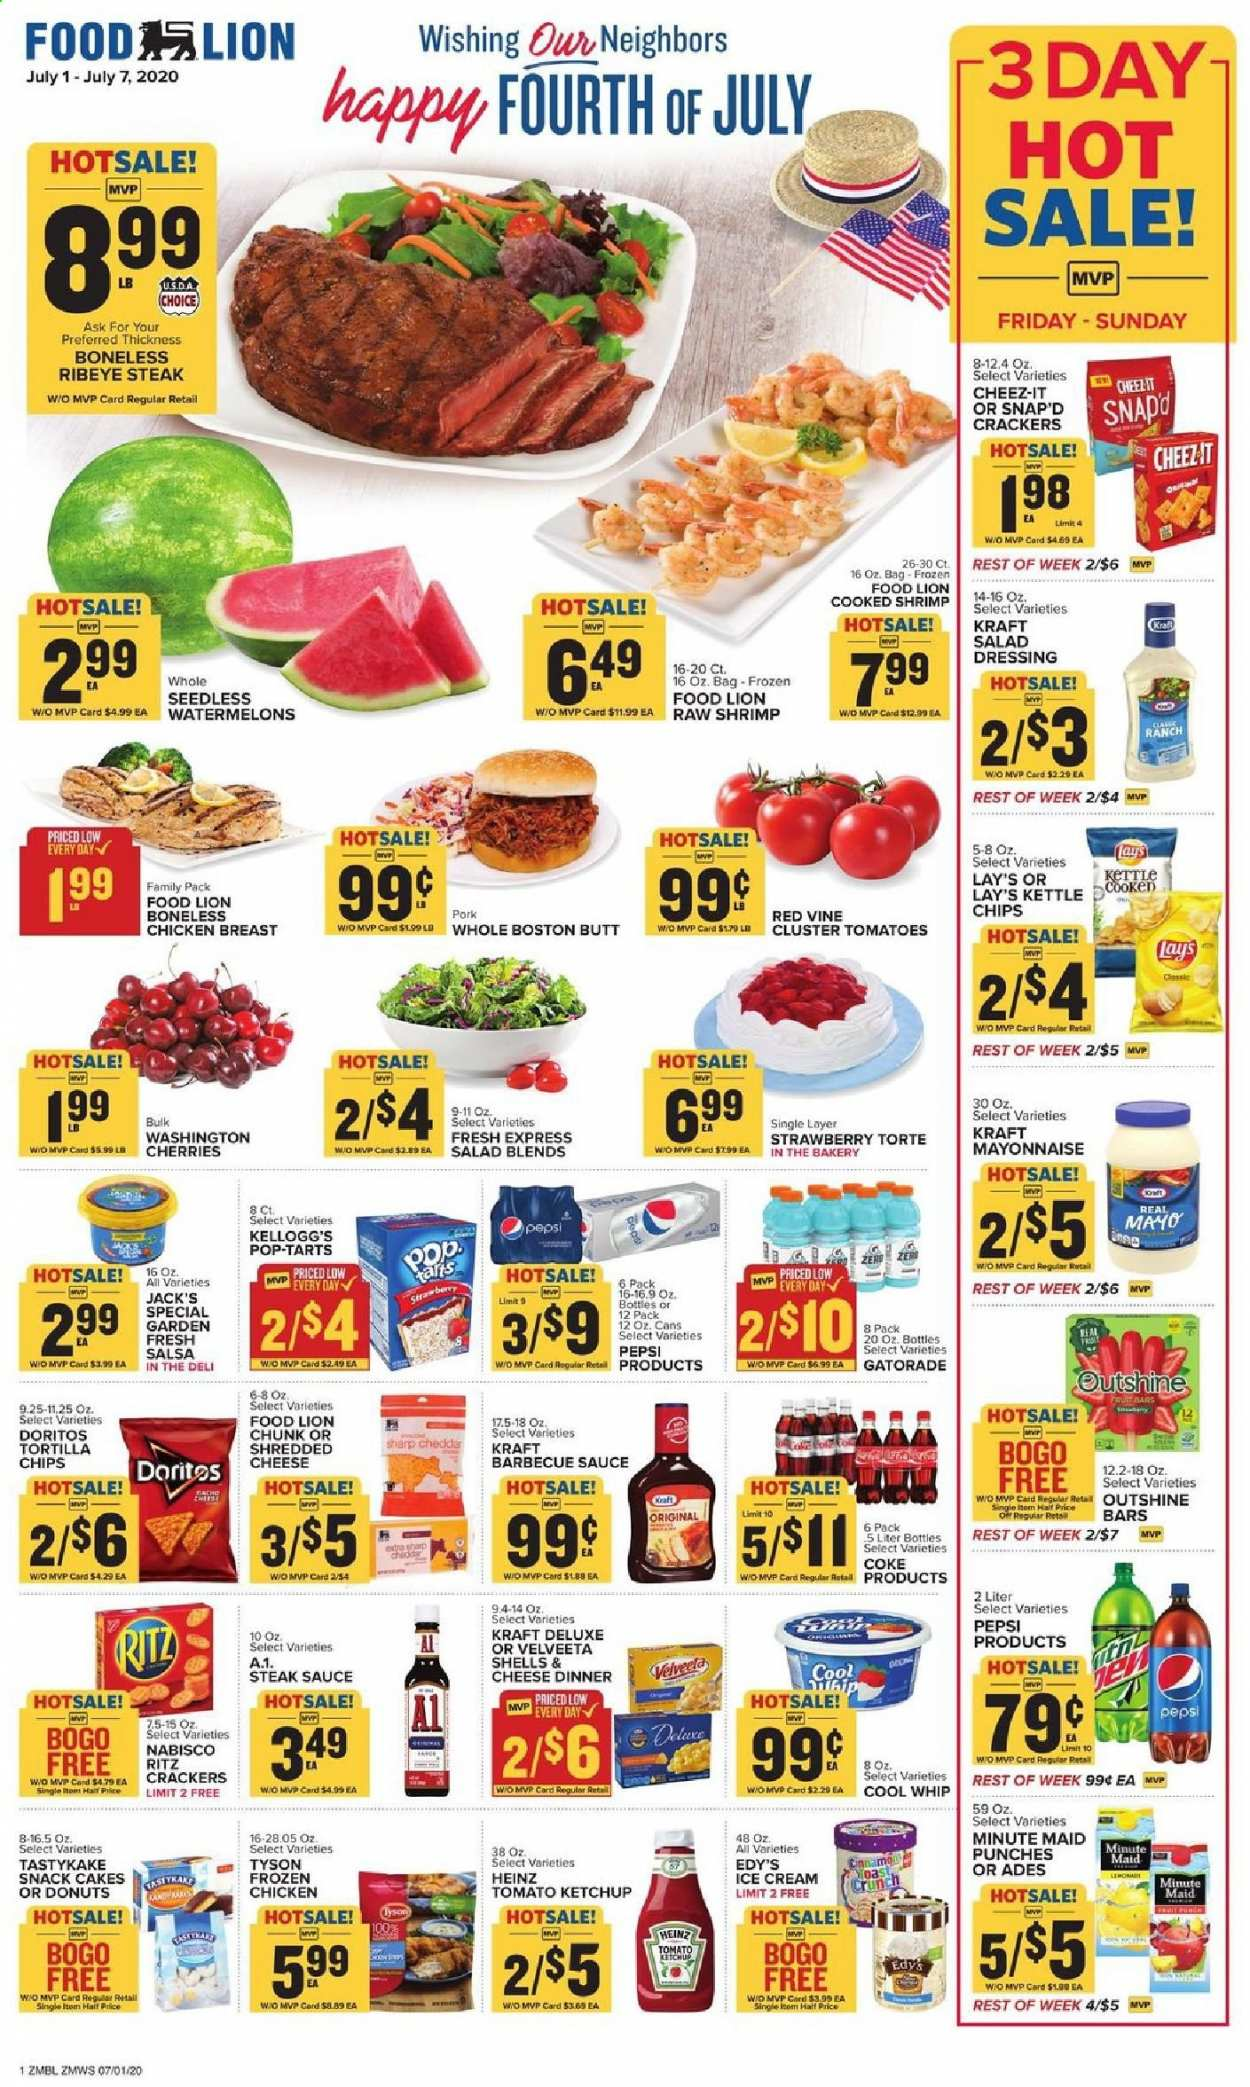 Food Lion Flyer - 07.01.2020 - 07.07.2020 - Sales products - bag, barbecue sauce, coca-cola, cool whip, crackers, doritos, mayonnaise, salad dressing, sharp, shredded cheese, shrimp, steak sauce, tomatoes, tortilla chips, heinz, ice cream, ketchup, pork meat, cheddar, cherries, chicken, chicken breast, pepsi, chips, steak, cheese, cake, dressing, snack, salsa, donuts, lay's, ritz, salad, sauce, strawberry, family pack, cool. Page 1.